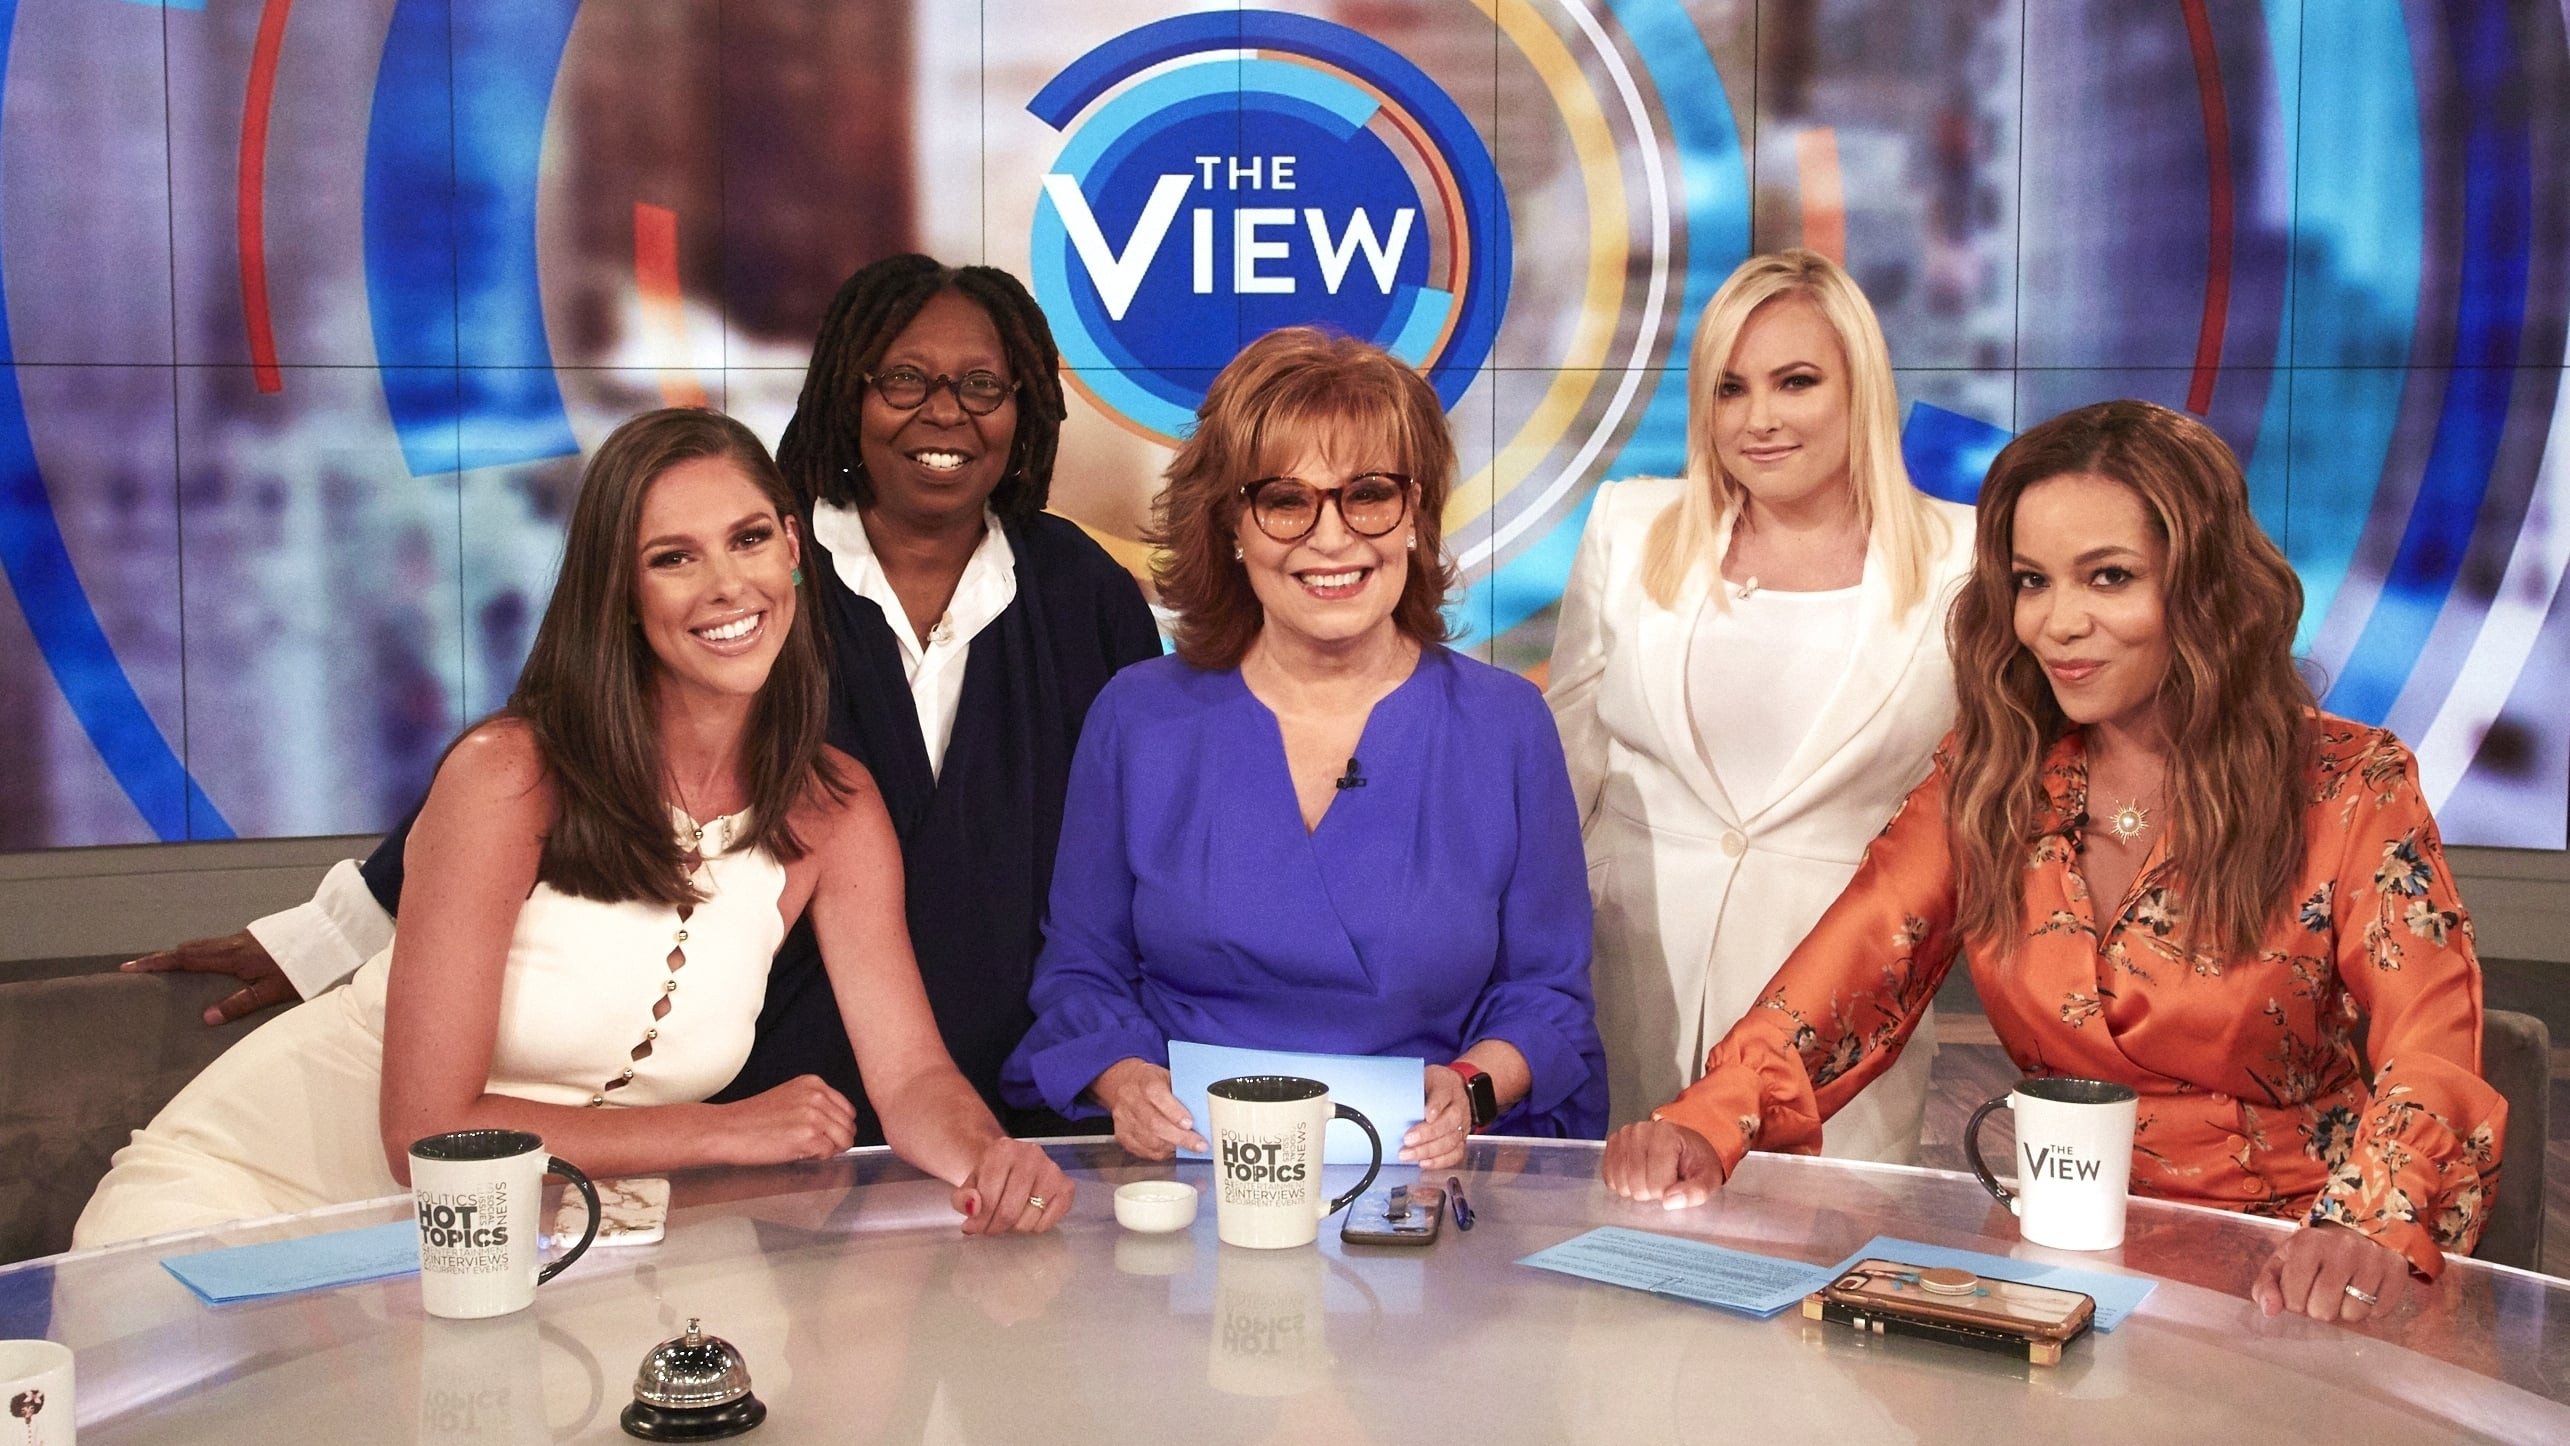 The View - Season 4 Episode 130 : Season 4, Episode 130